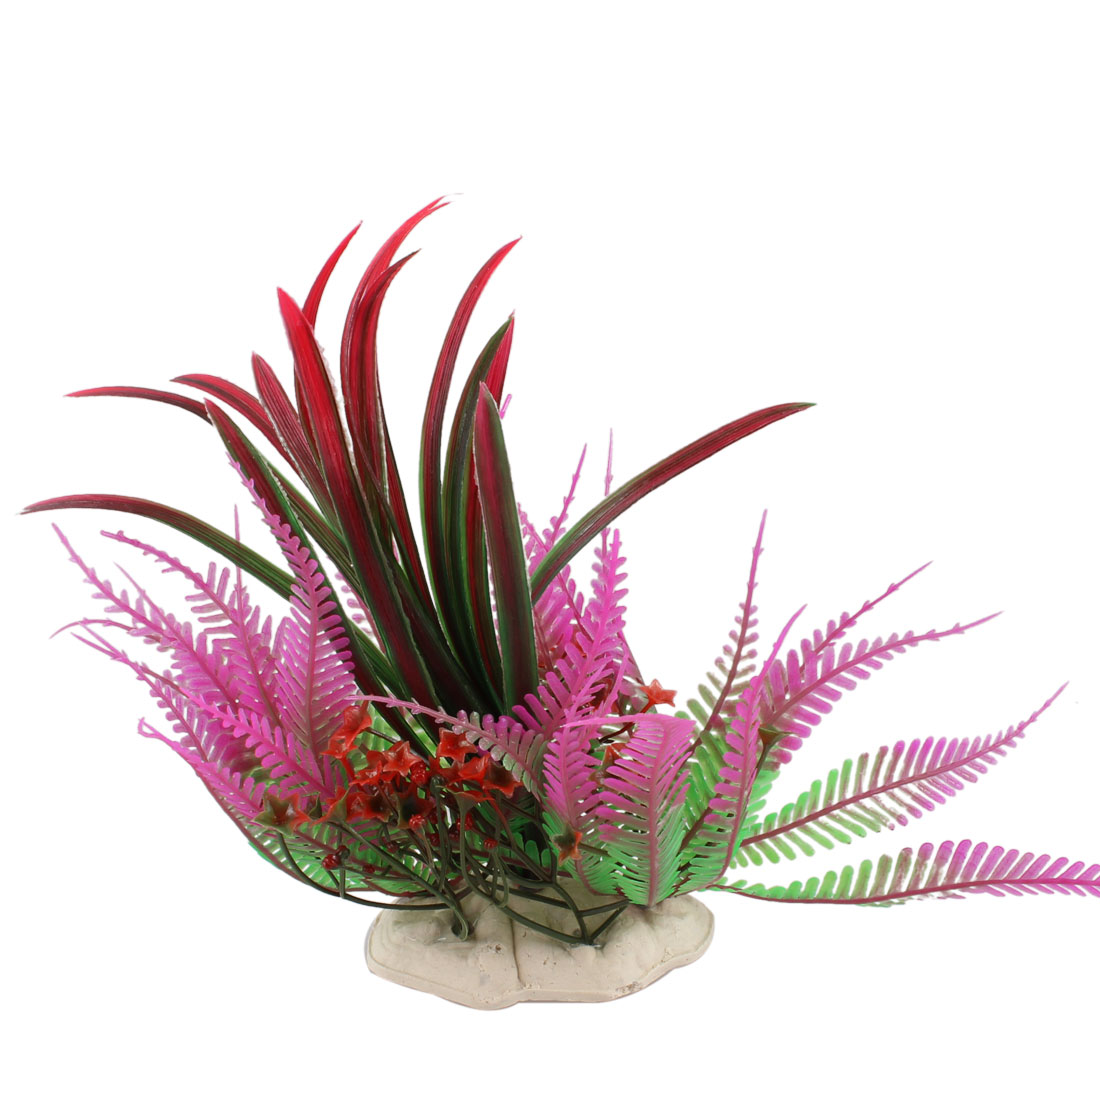 Fish-Tank-Plastic-Fuchsia-Green-Grass-Plant-Decor-8-9-Height